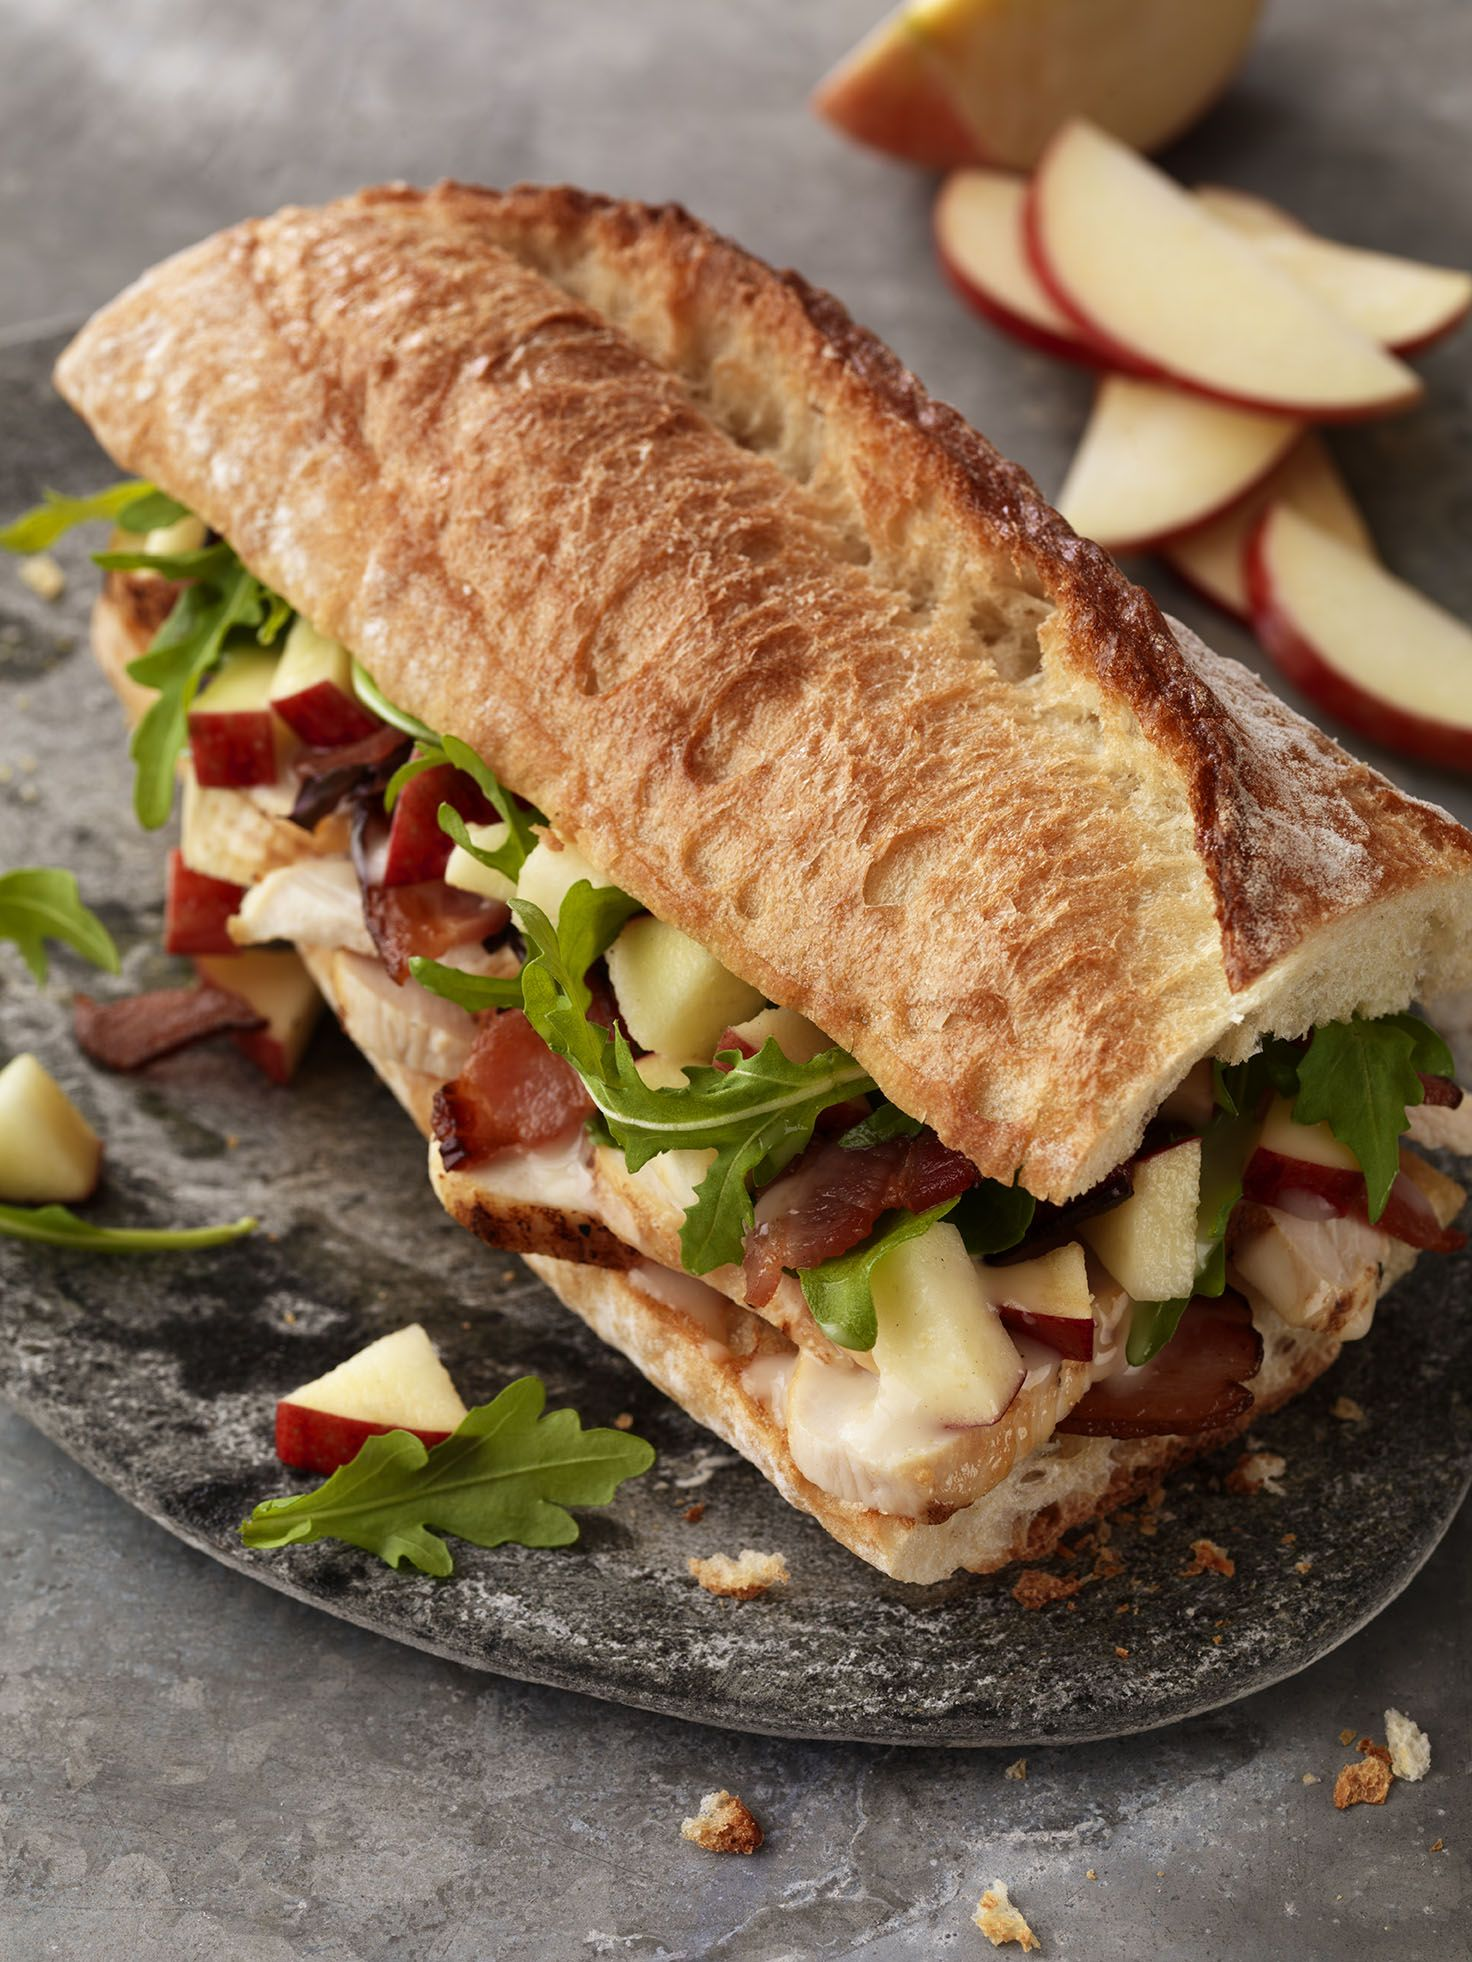 Turkey, Bacon & Apple Sandwich is perfect for anyone who